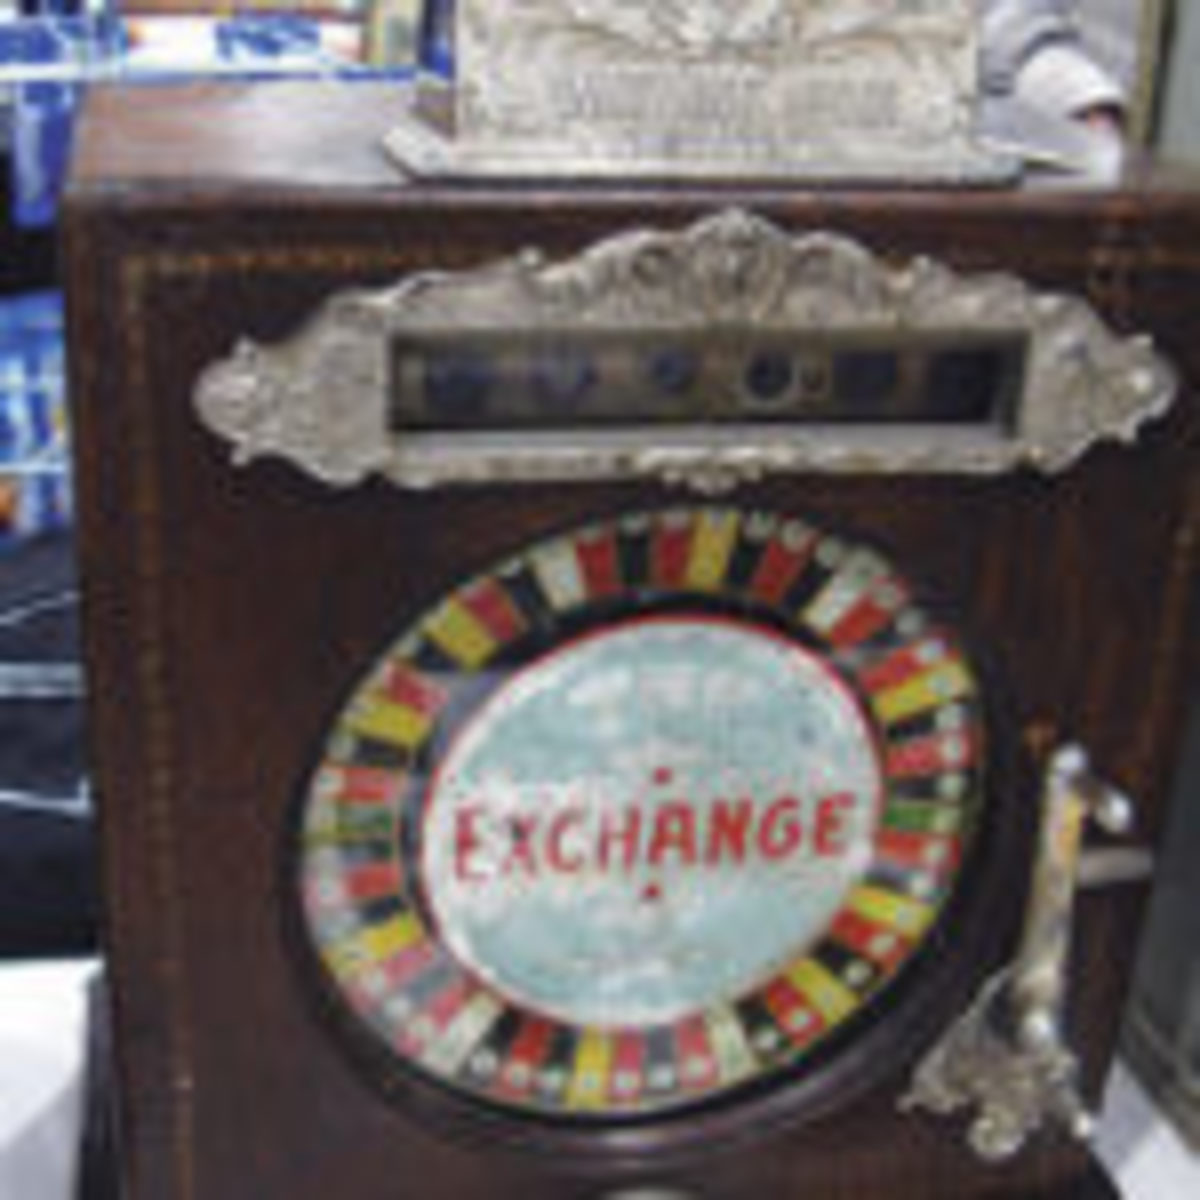 Robert McCurdy drove 650 miles to the show from White, South Dakota to show off an all original 18-inch-tall nickel plated cast iron and wood slot machine with fancy glass face. The nickel operated slot could spin and entertain guests at your place for $8,500.